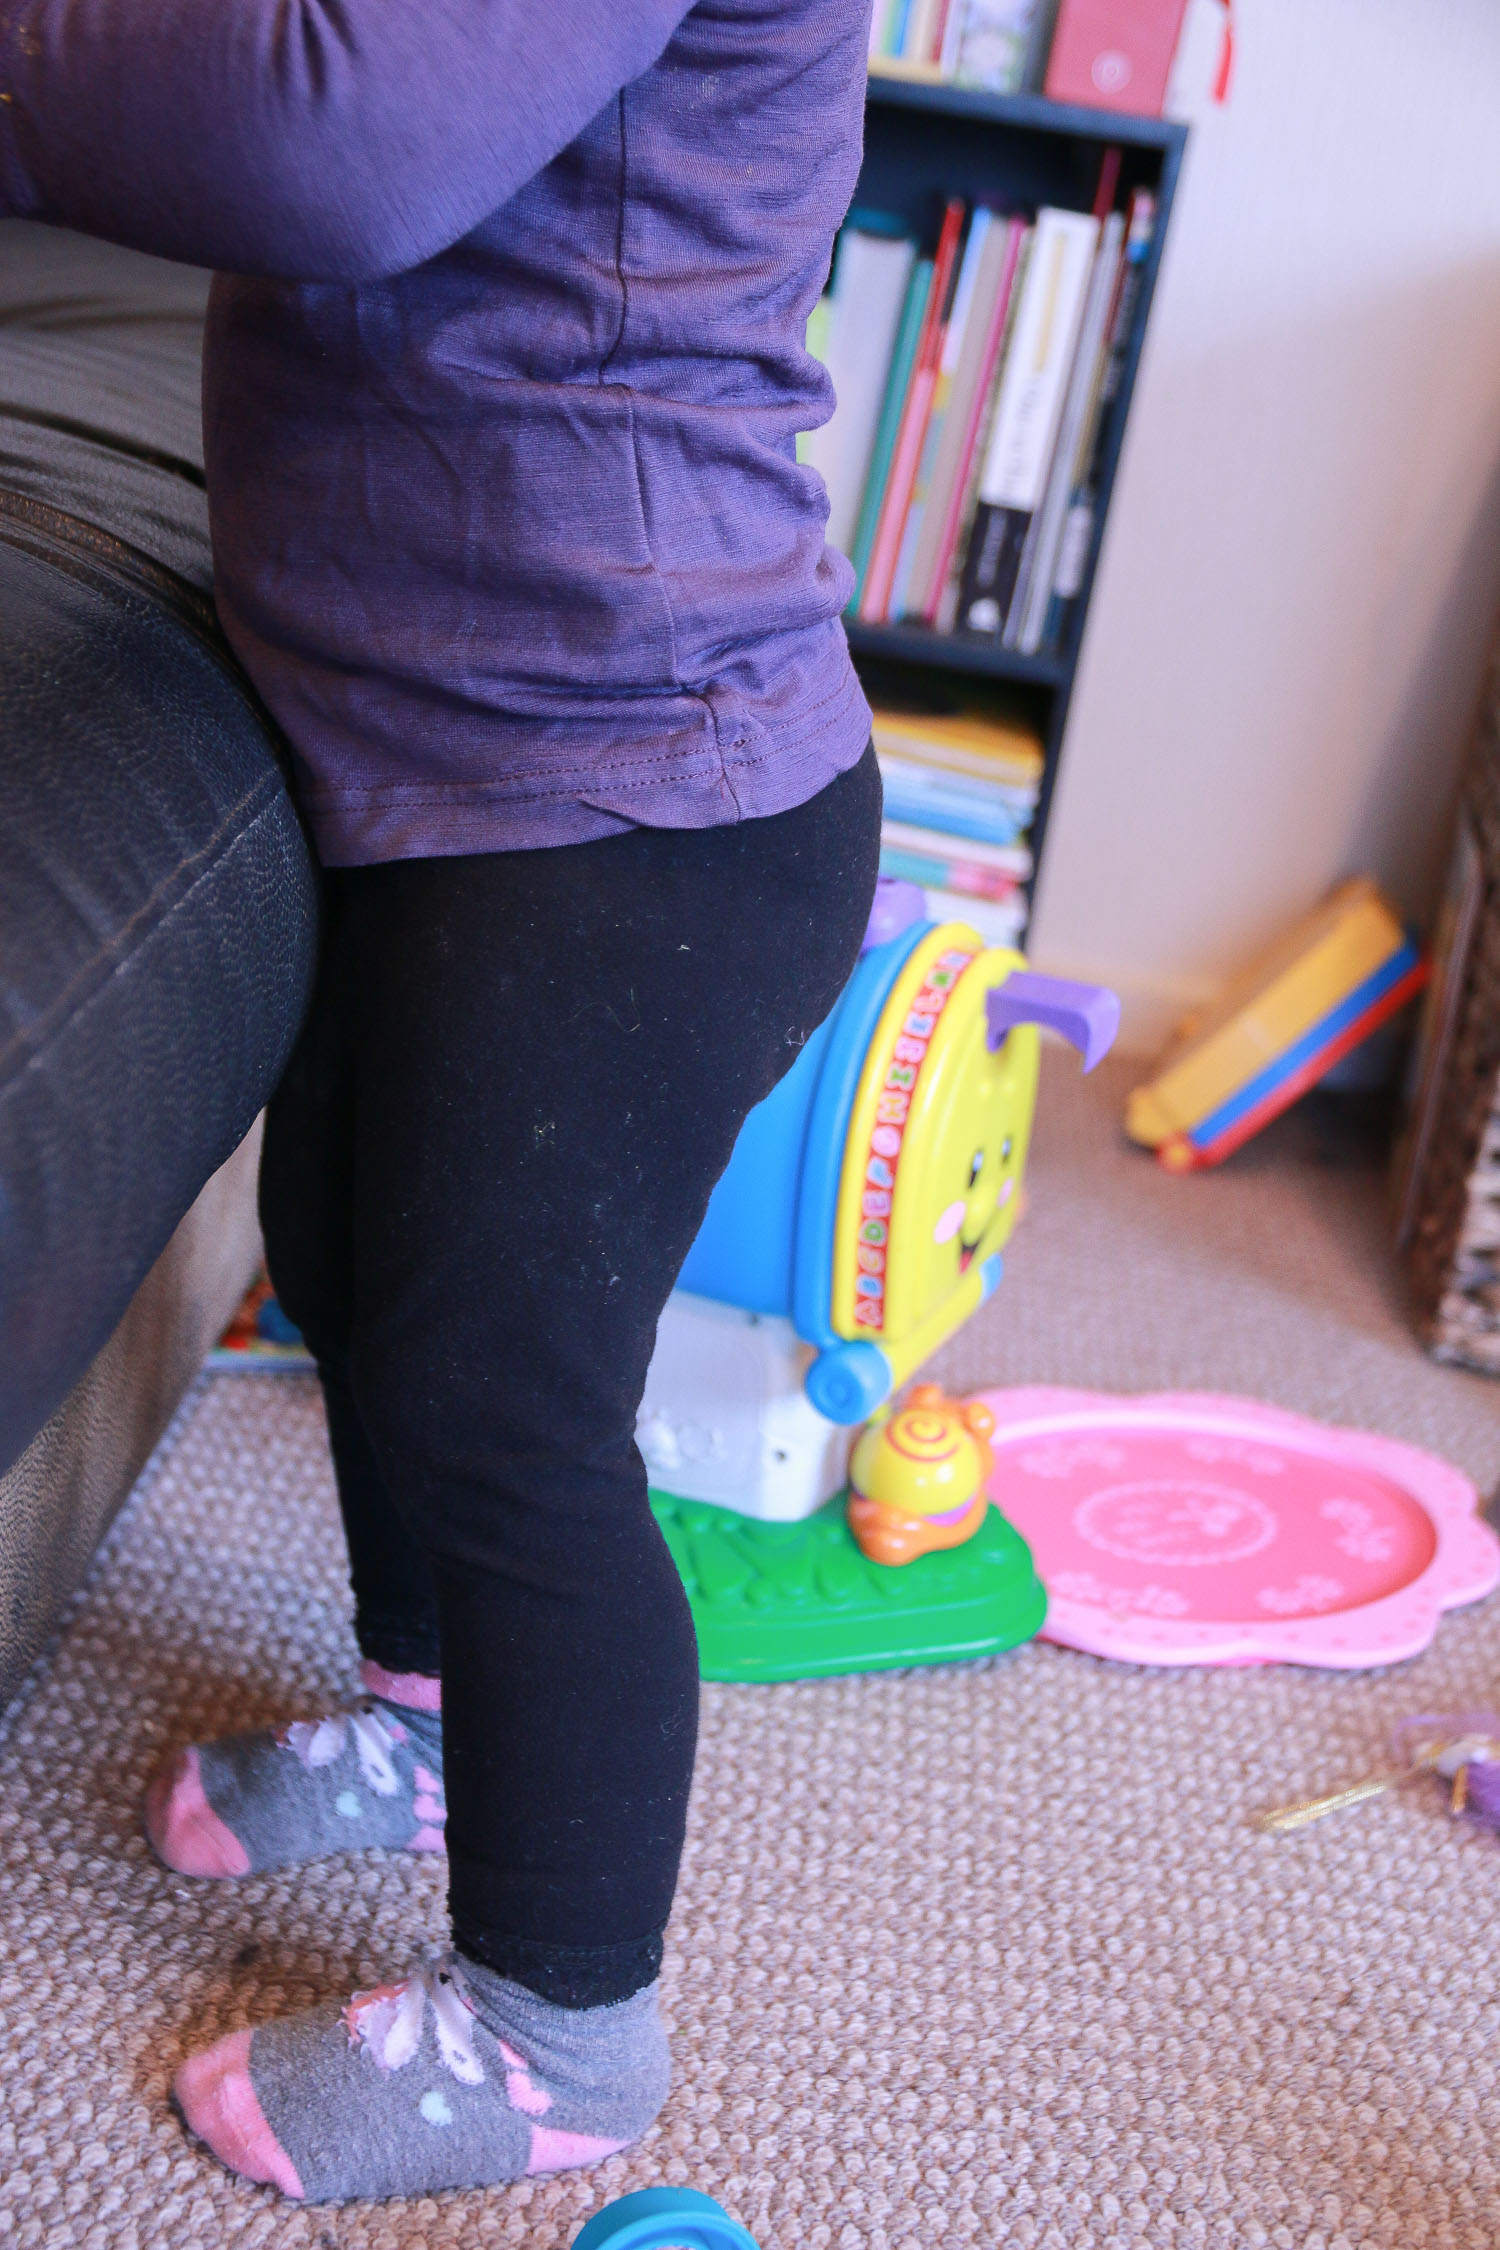 little-girl-standing-by-couch-toys-all-around-her-purple-top-and-cute-tights.jpg